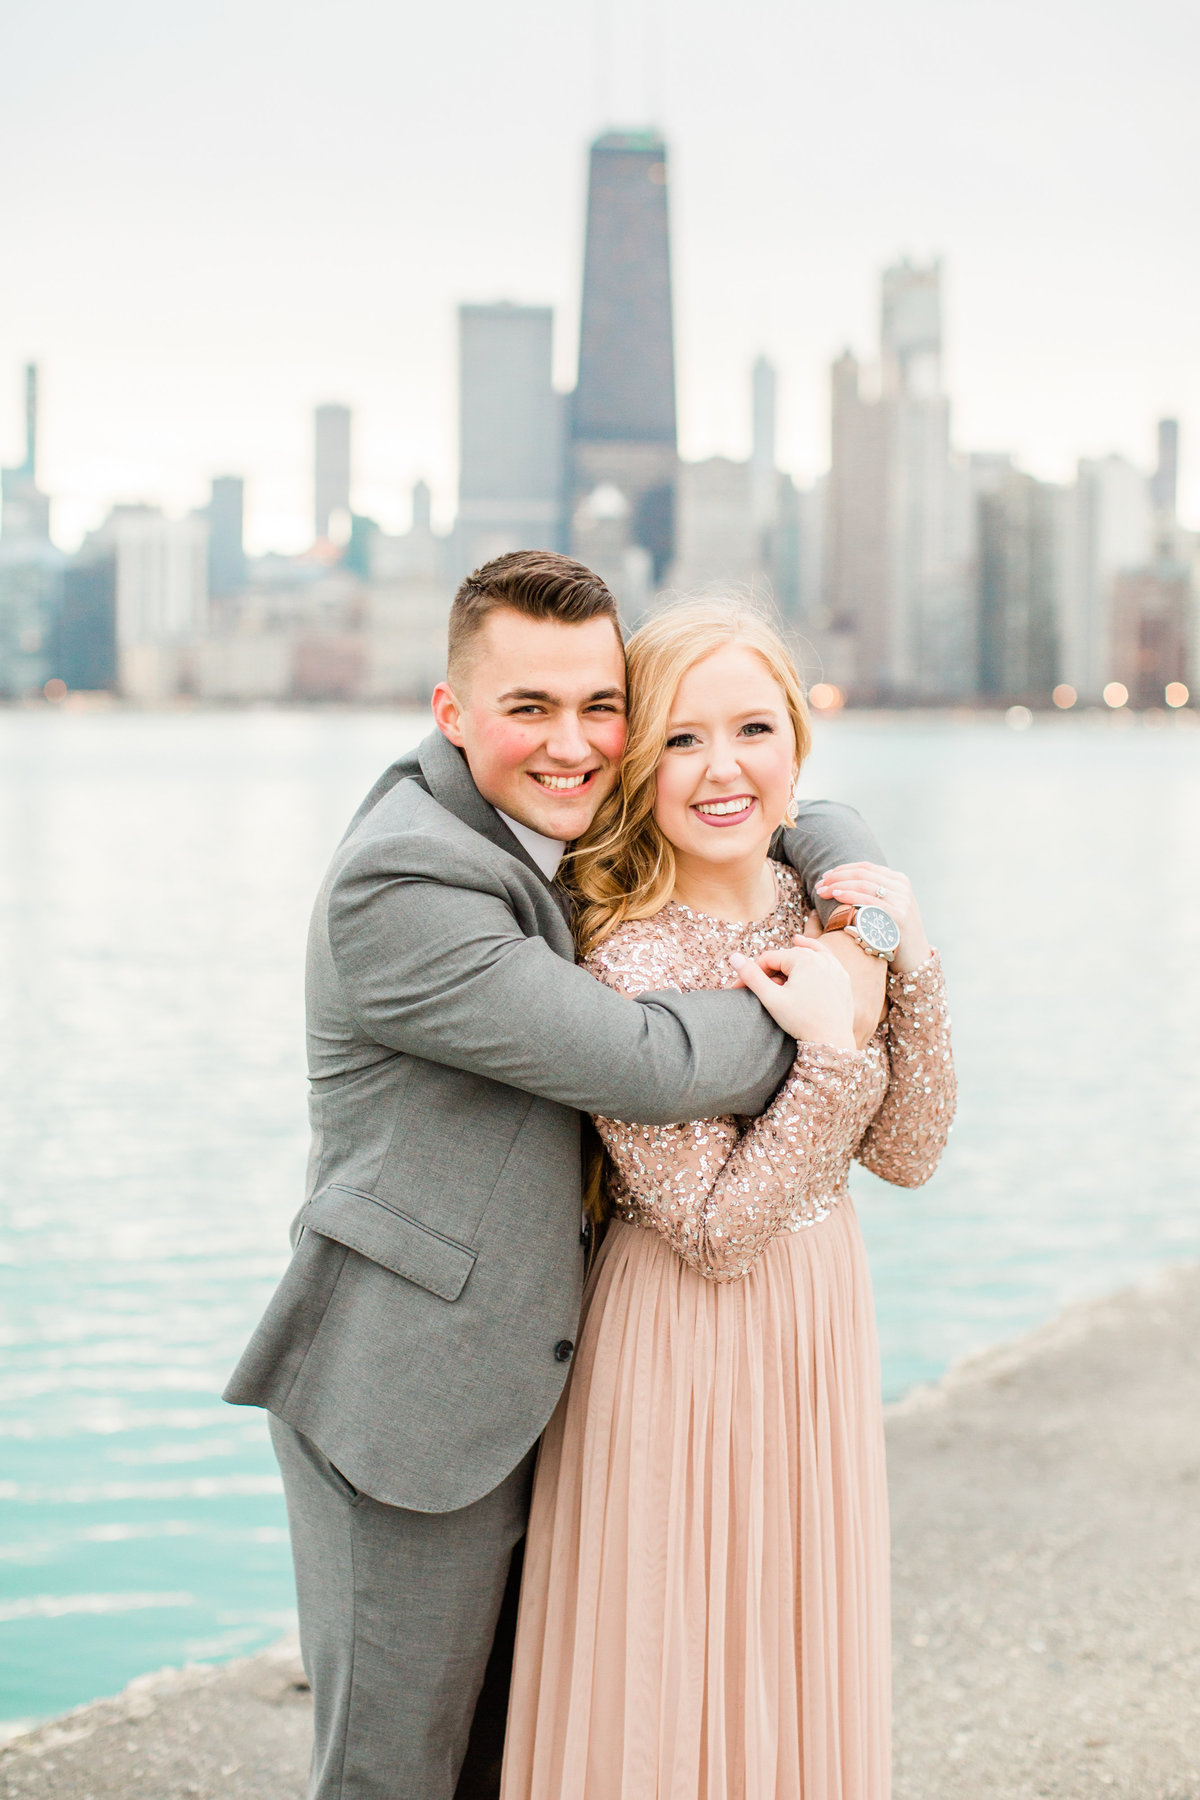 lindsey-taylor-photography-north-avenue-beach-chicago-engagement-photographer16